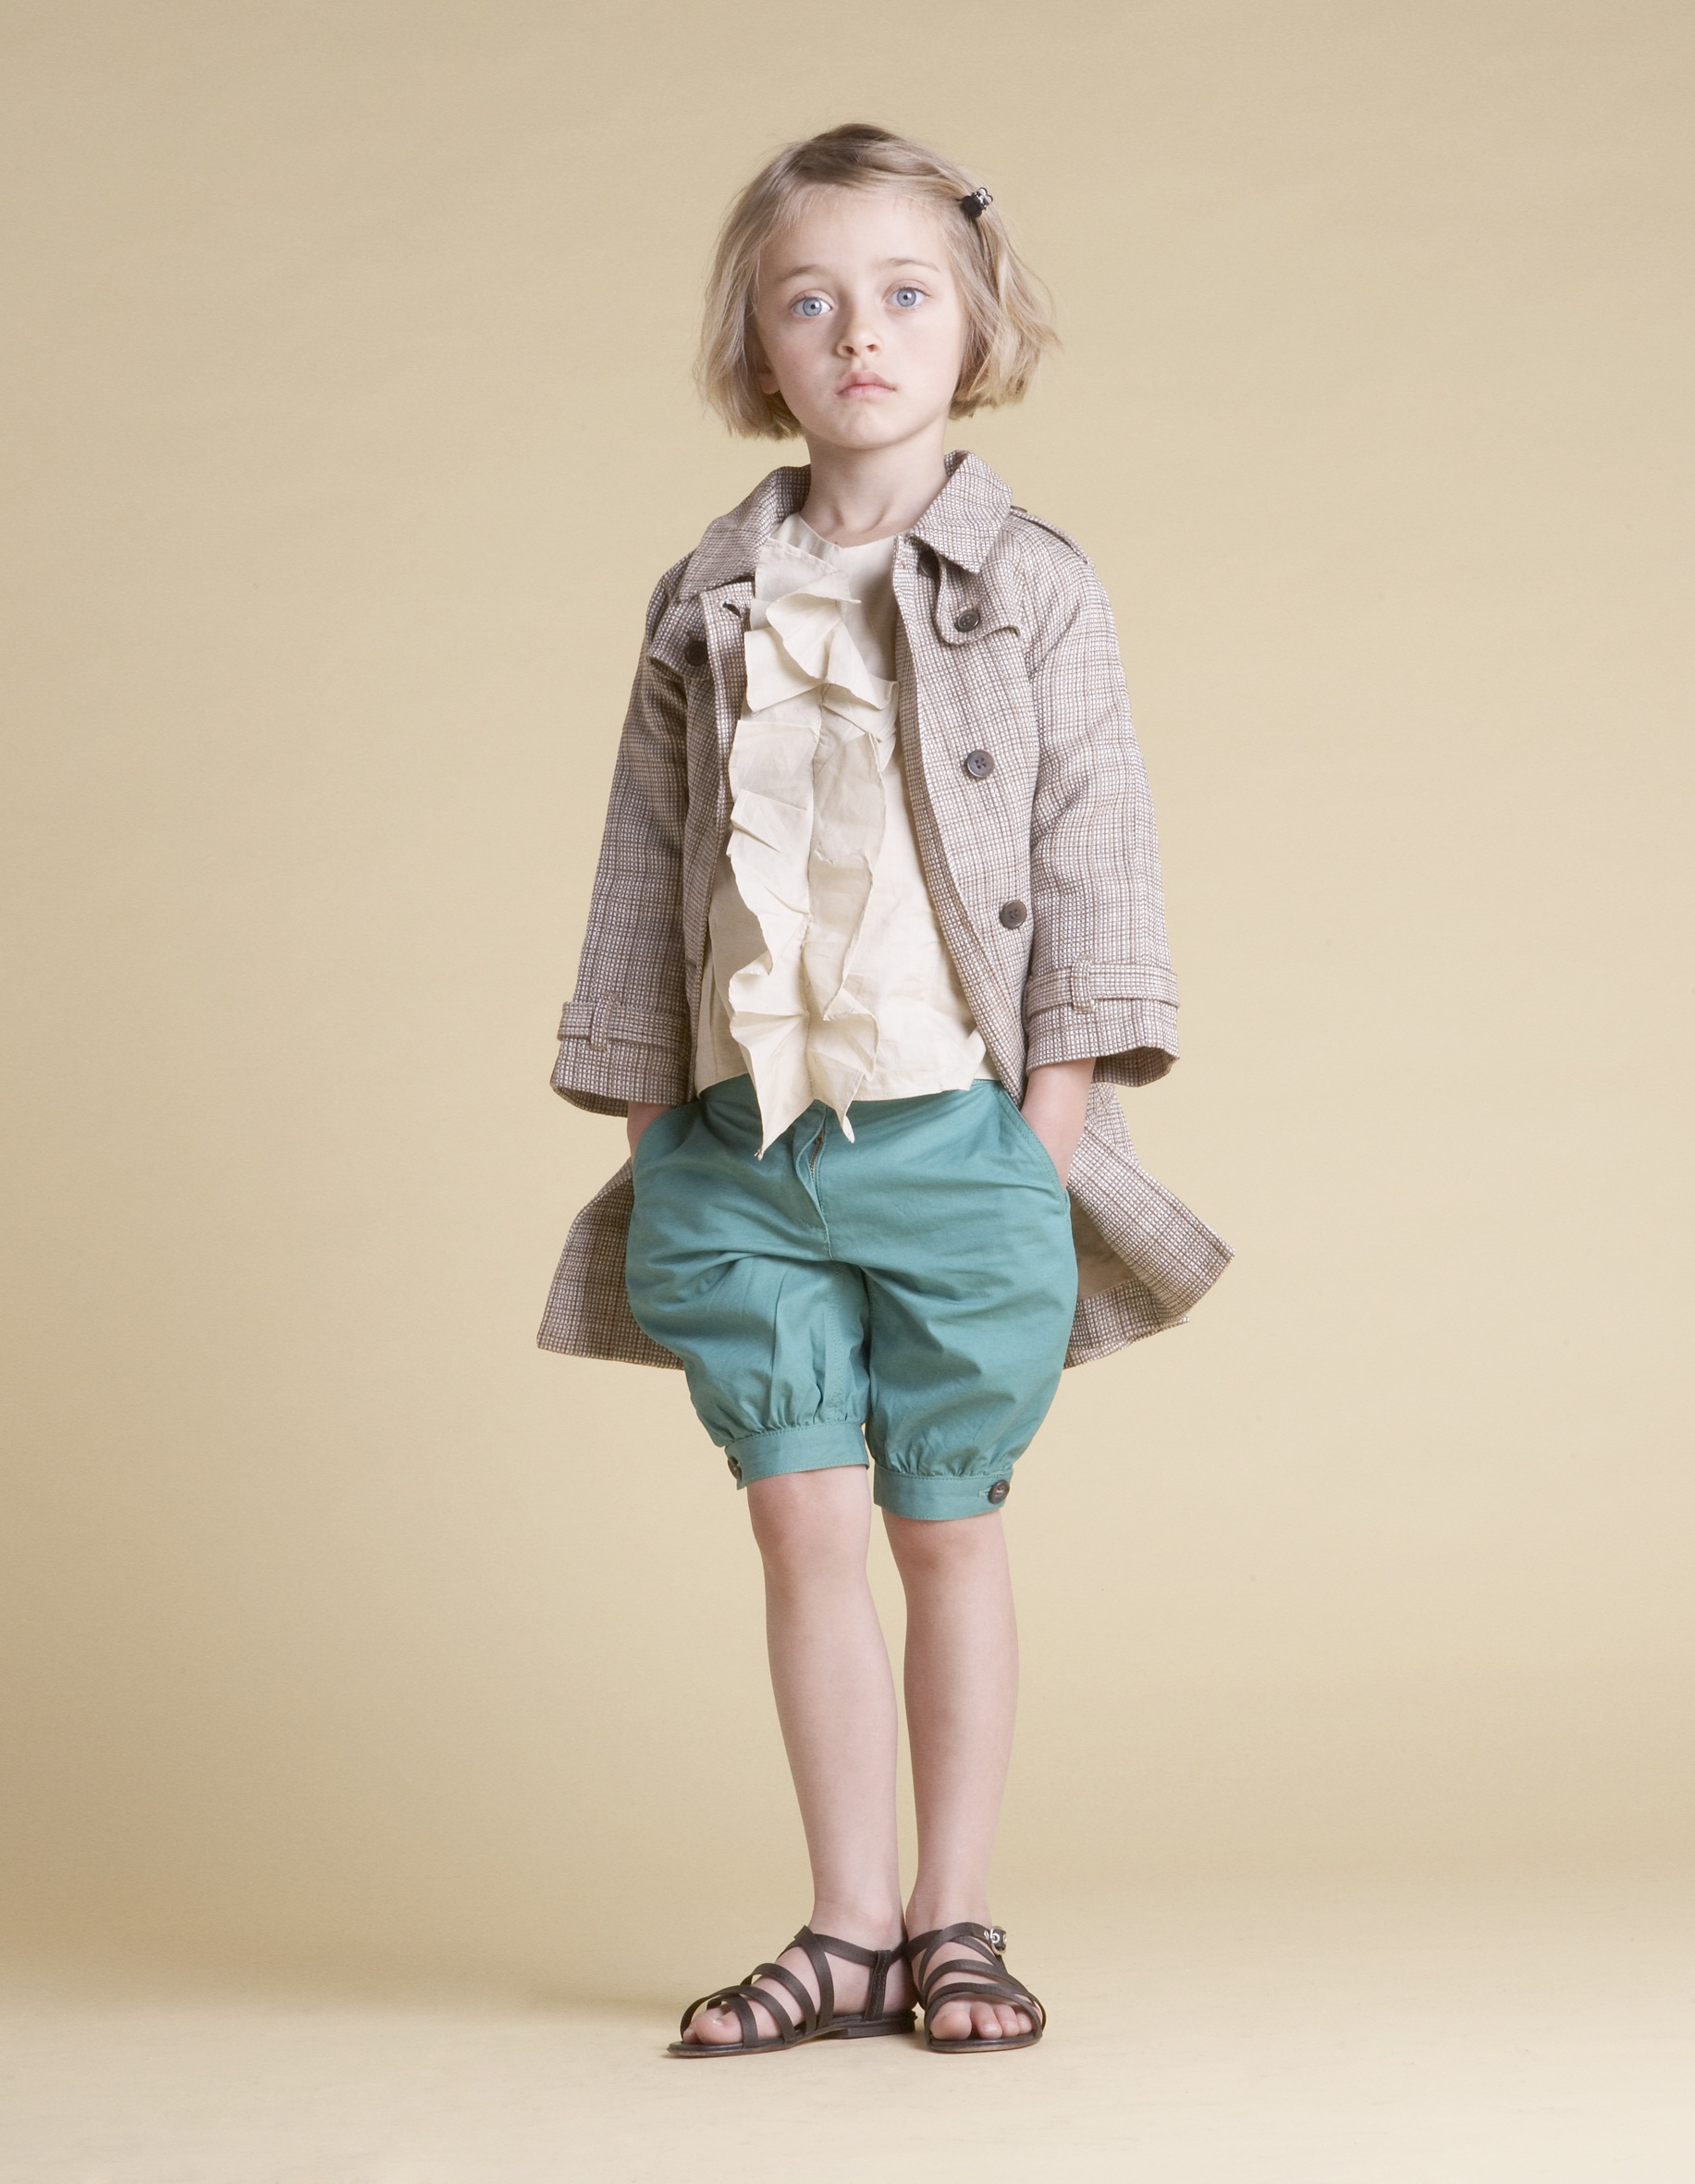 Children's fashion from Caramel for spring summer 2010